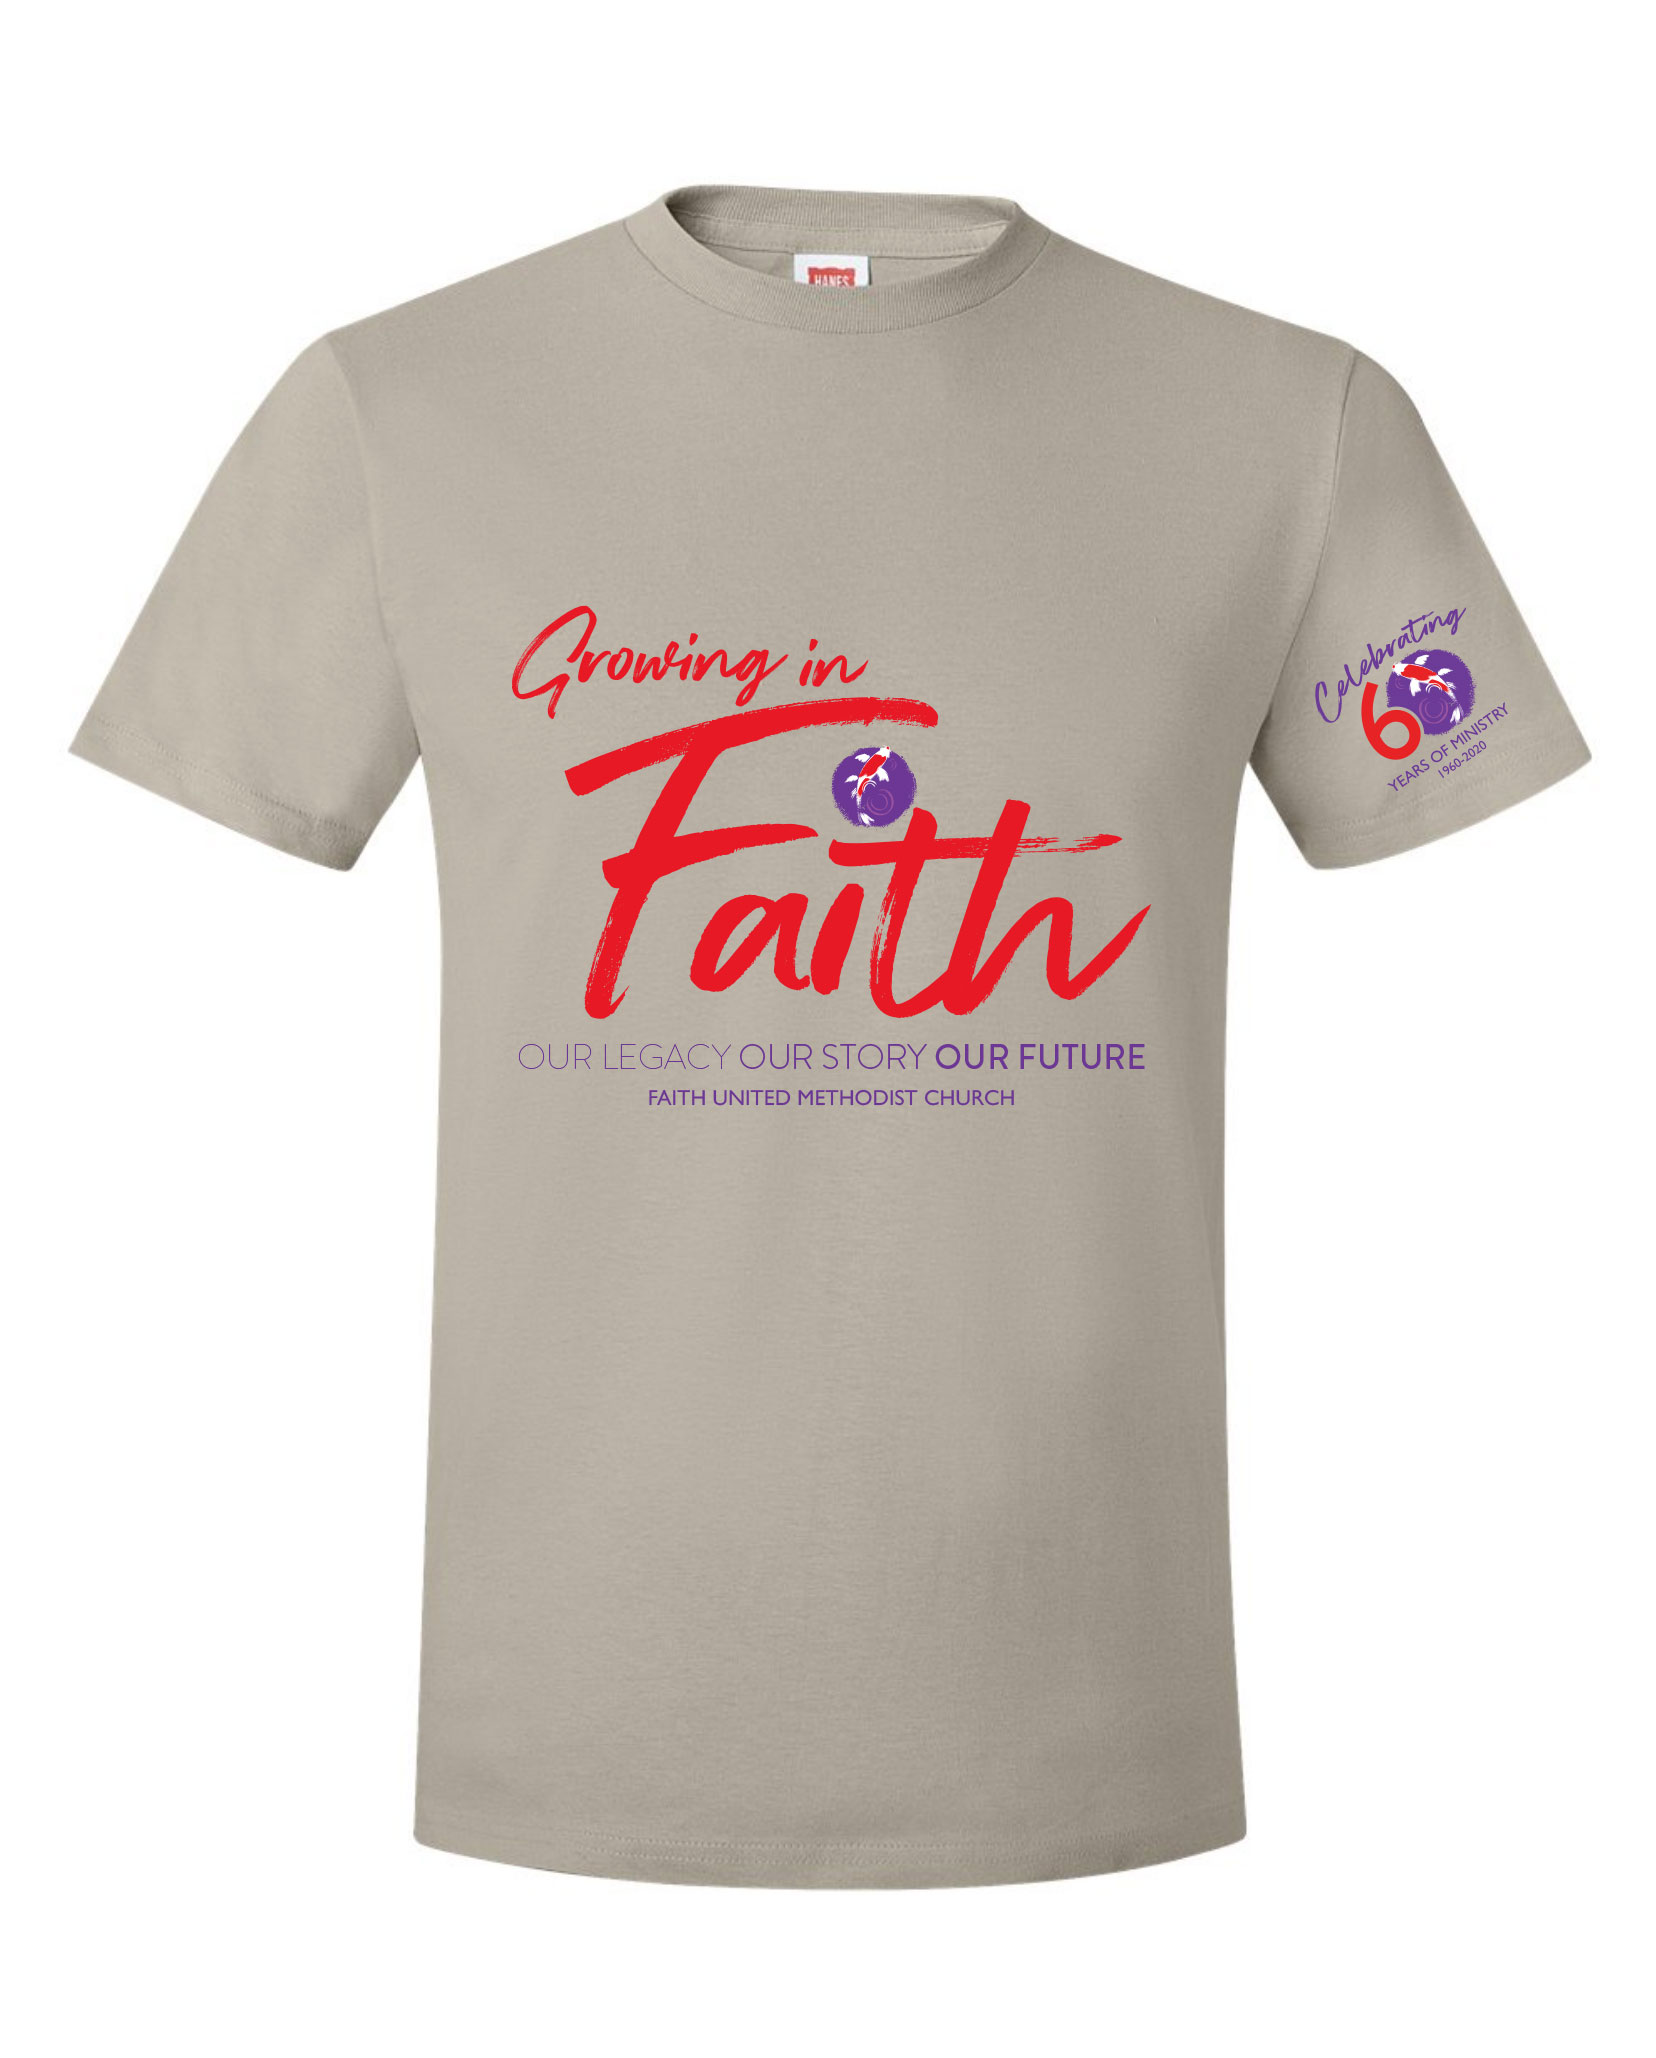 Faith UMC 60th Anniversary Commemorative Shirt